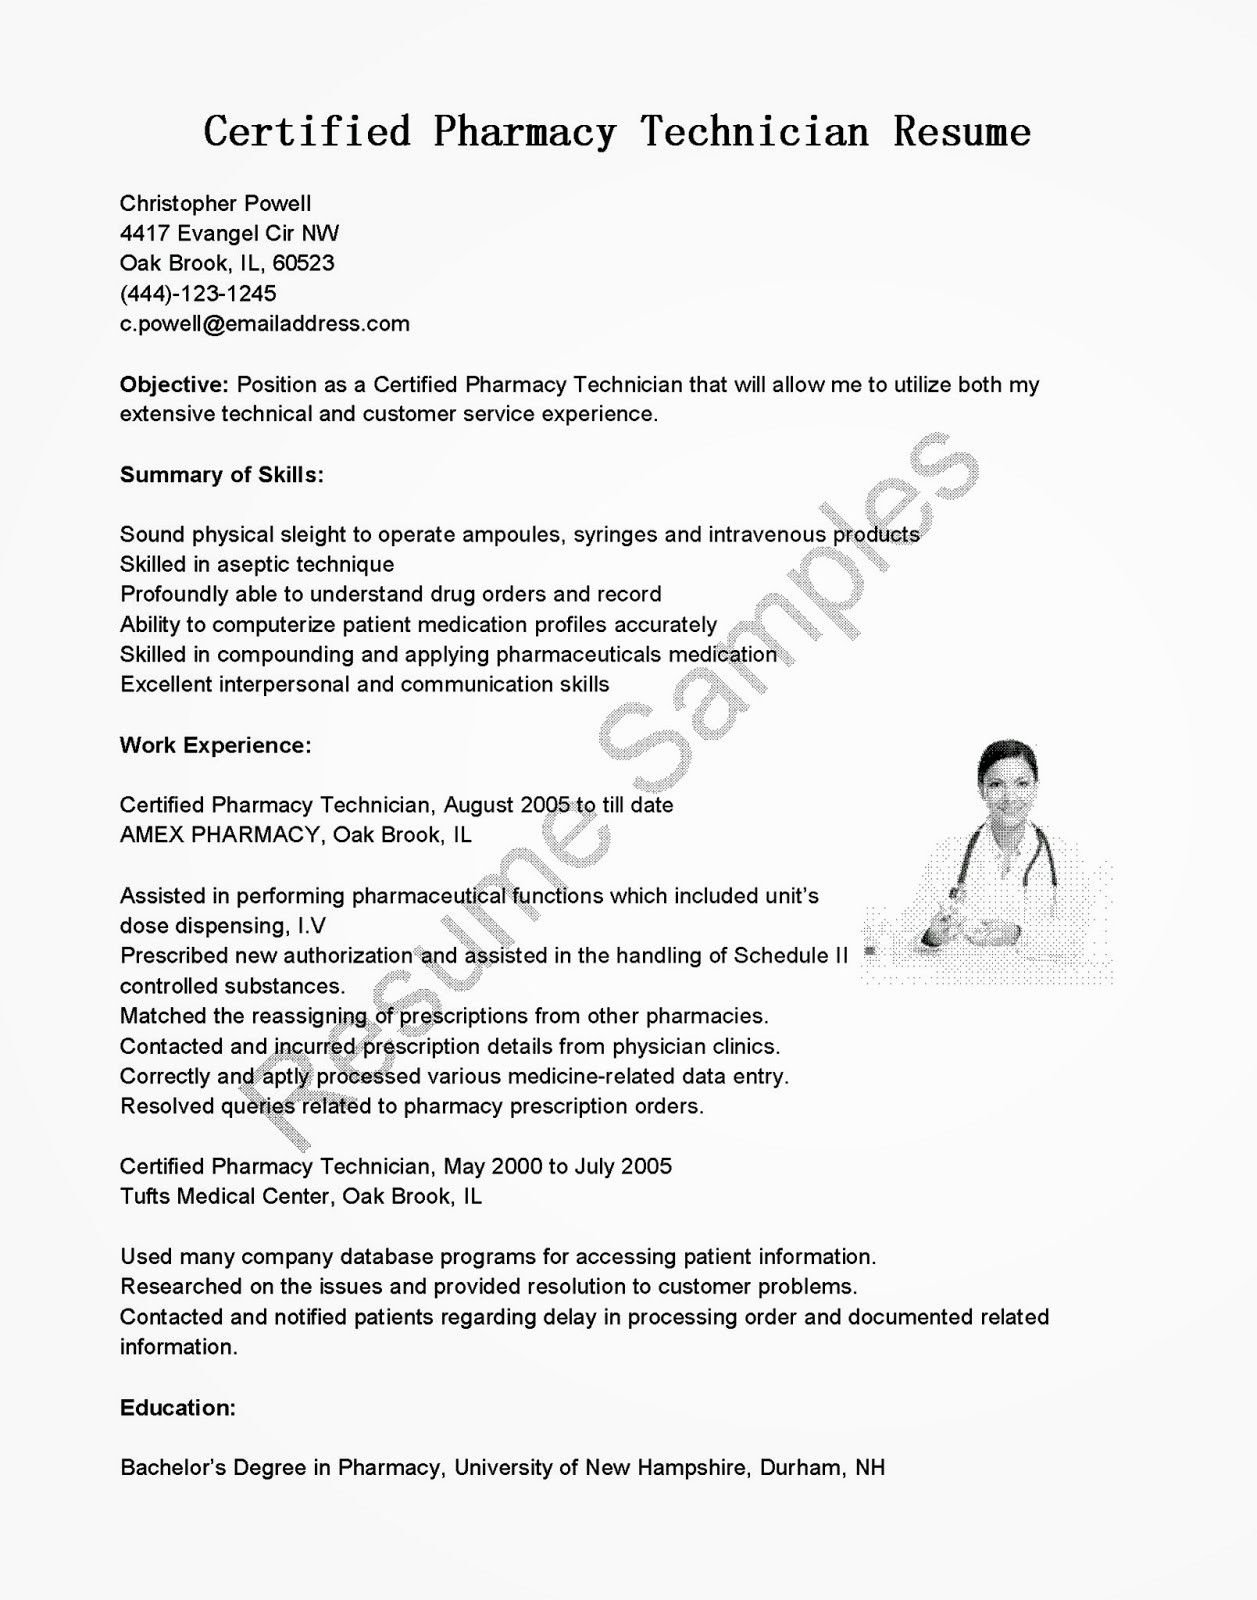 Elegant Resume Samples Certified Pharmacy Technician